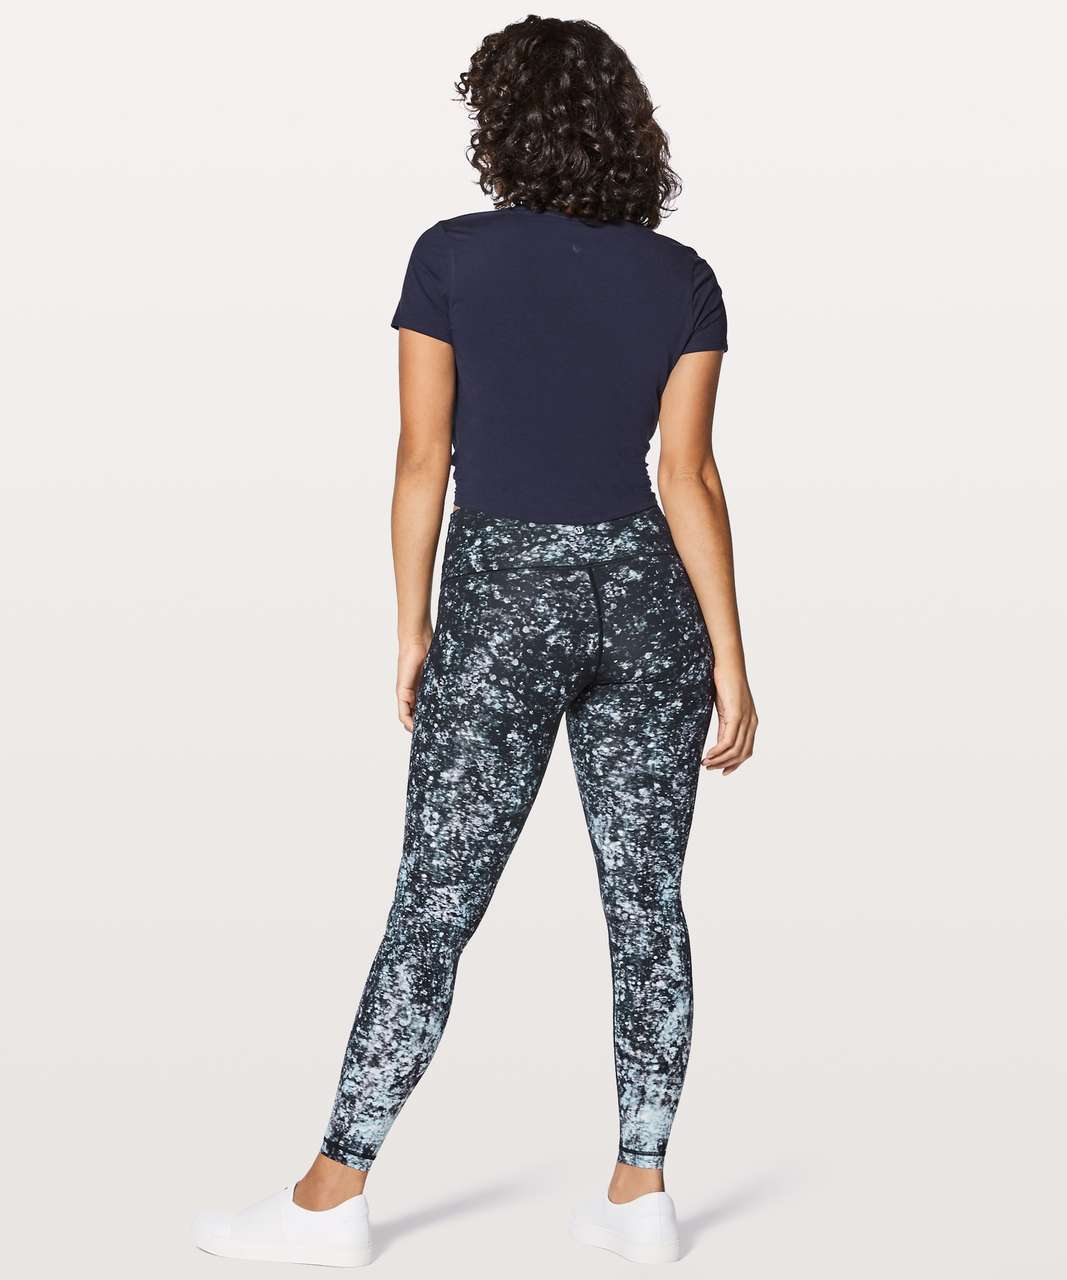 Lululemon Wunder Under Hi-Rise Tight *Nulux - Effervescence Wunder Under Pant Hi-rise 50g Multi Black